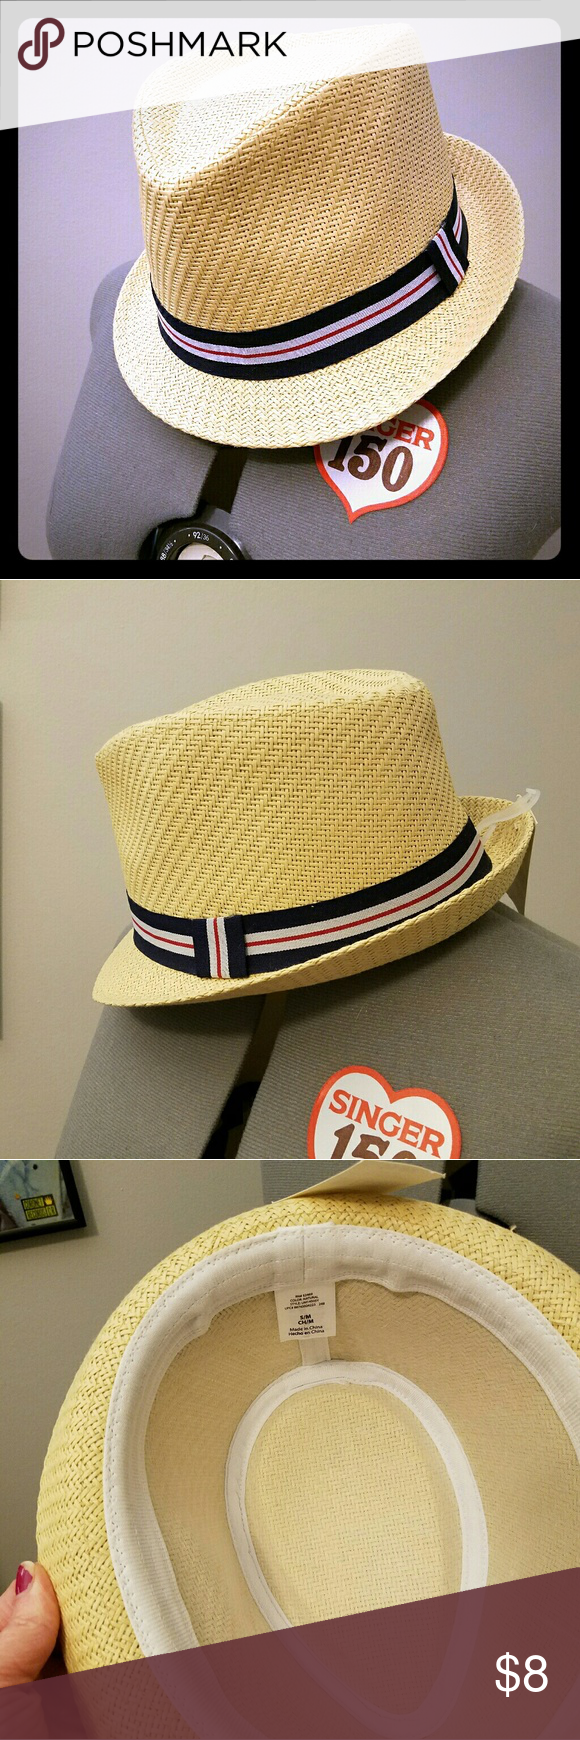 Summery Fedora NWT Straw Fedora hat, perfect for summer. Cute navy, white and red ribbon. Size S/M. NWT. Accessories Hats